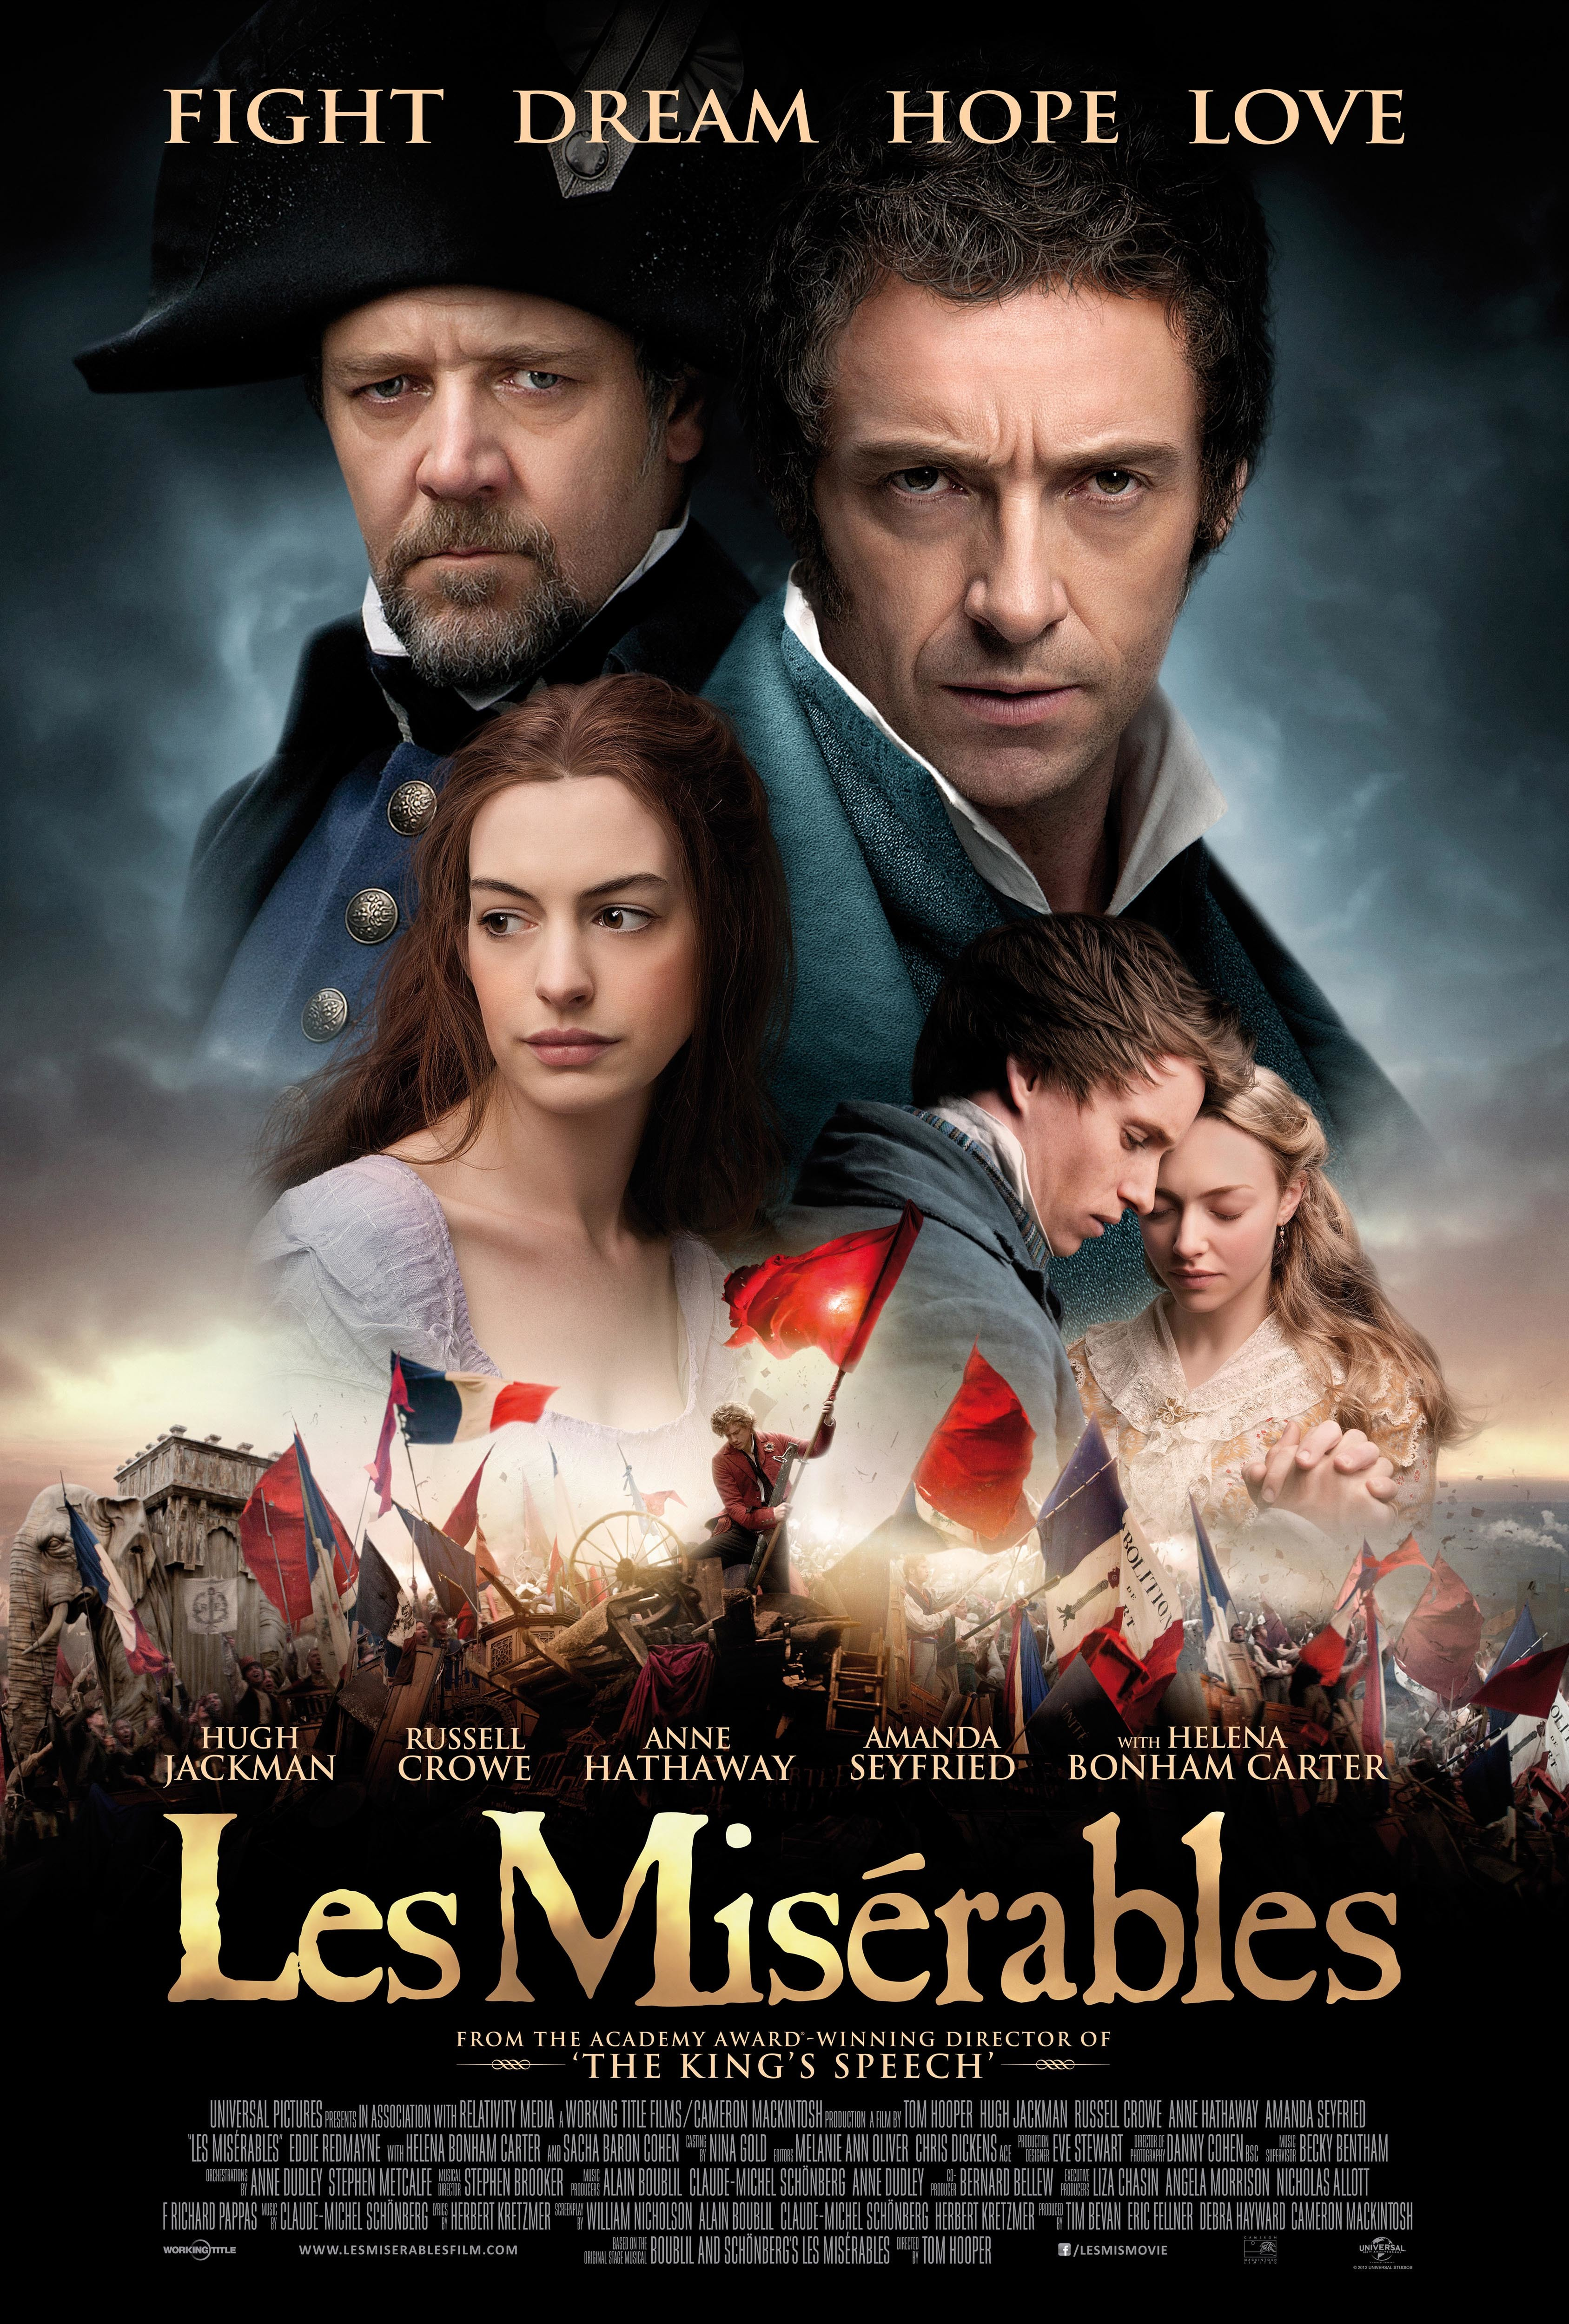 """Russell Crowe, Anne Hathaway, Hugh Jackman, Eddie Redmayne and Amanda Seyfried appear on the movie poster for 2012's """"Les Misérables."""""""